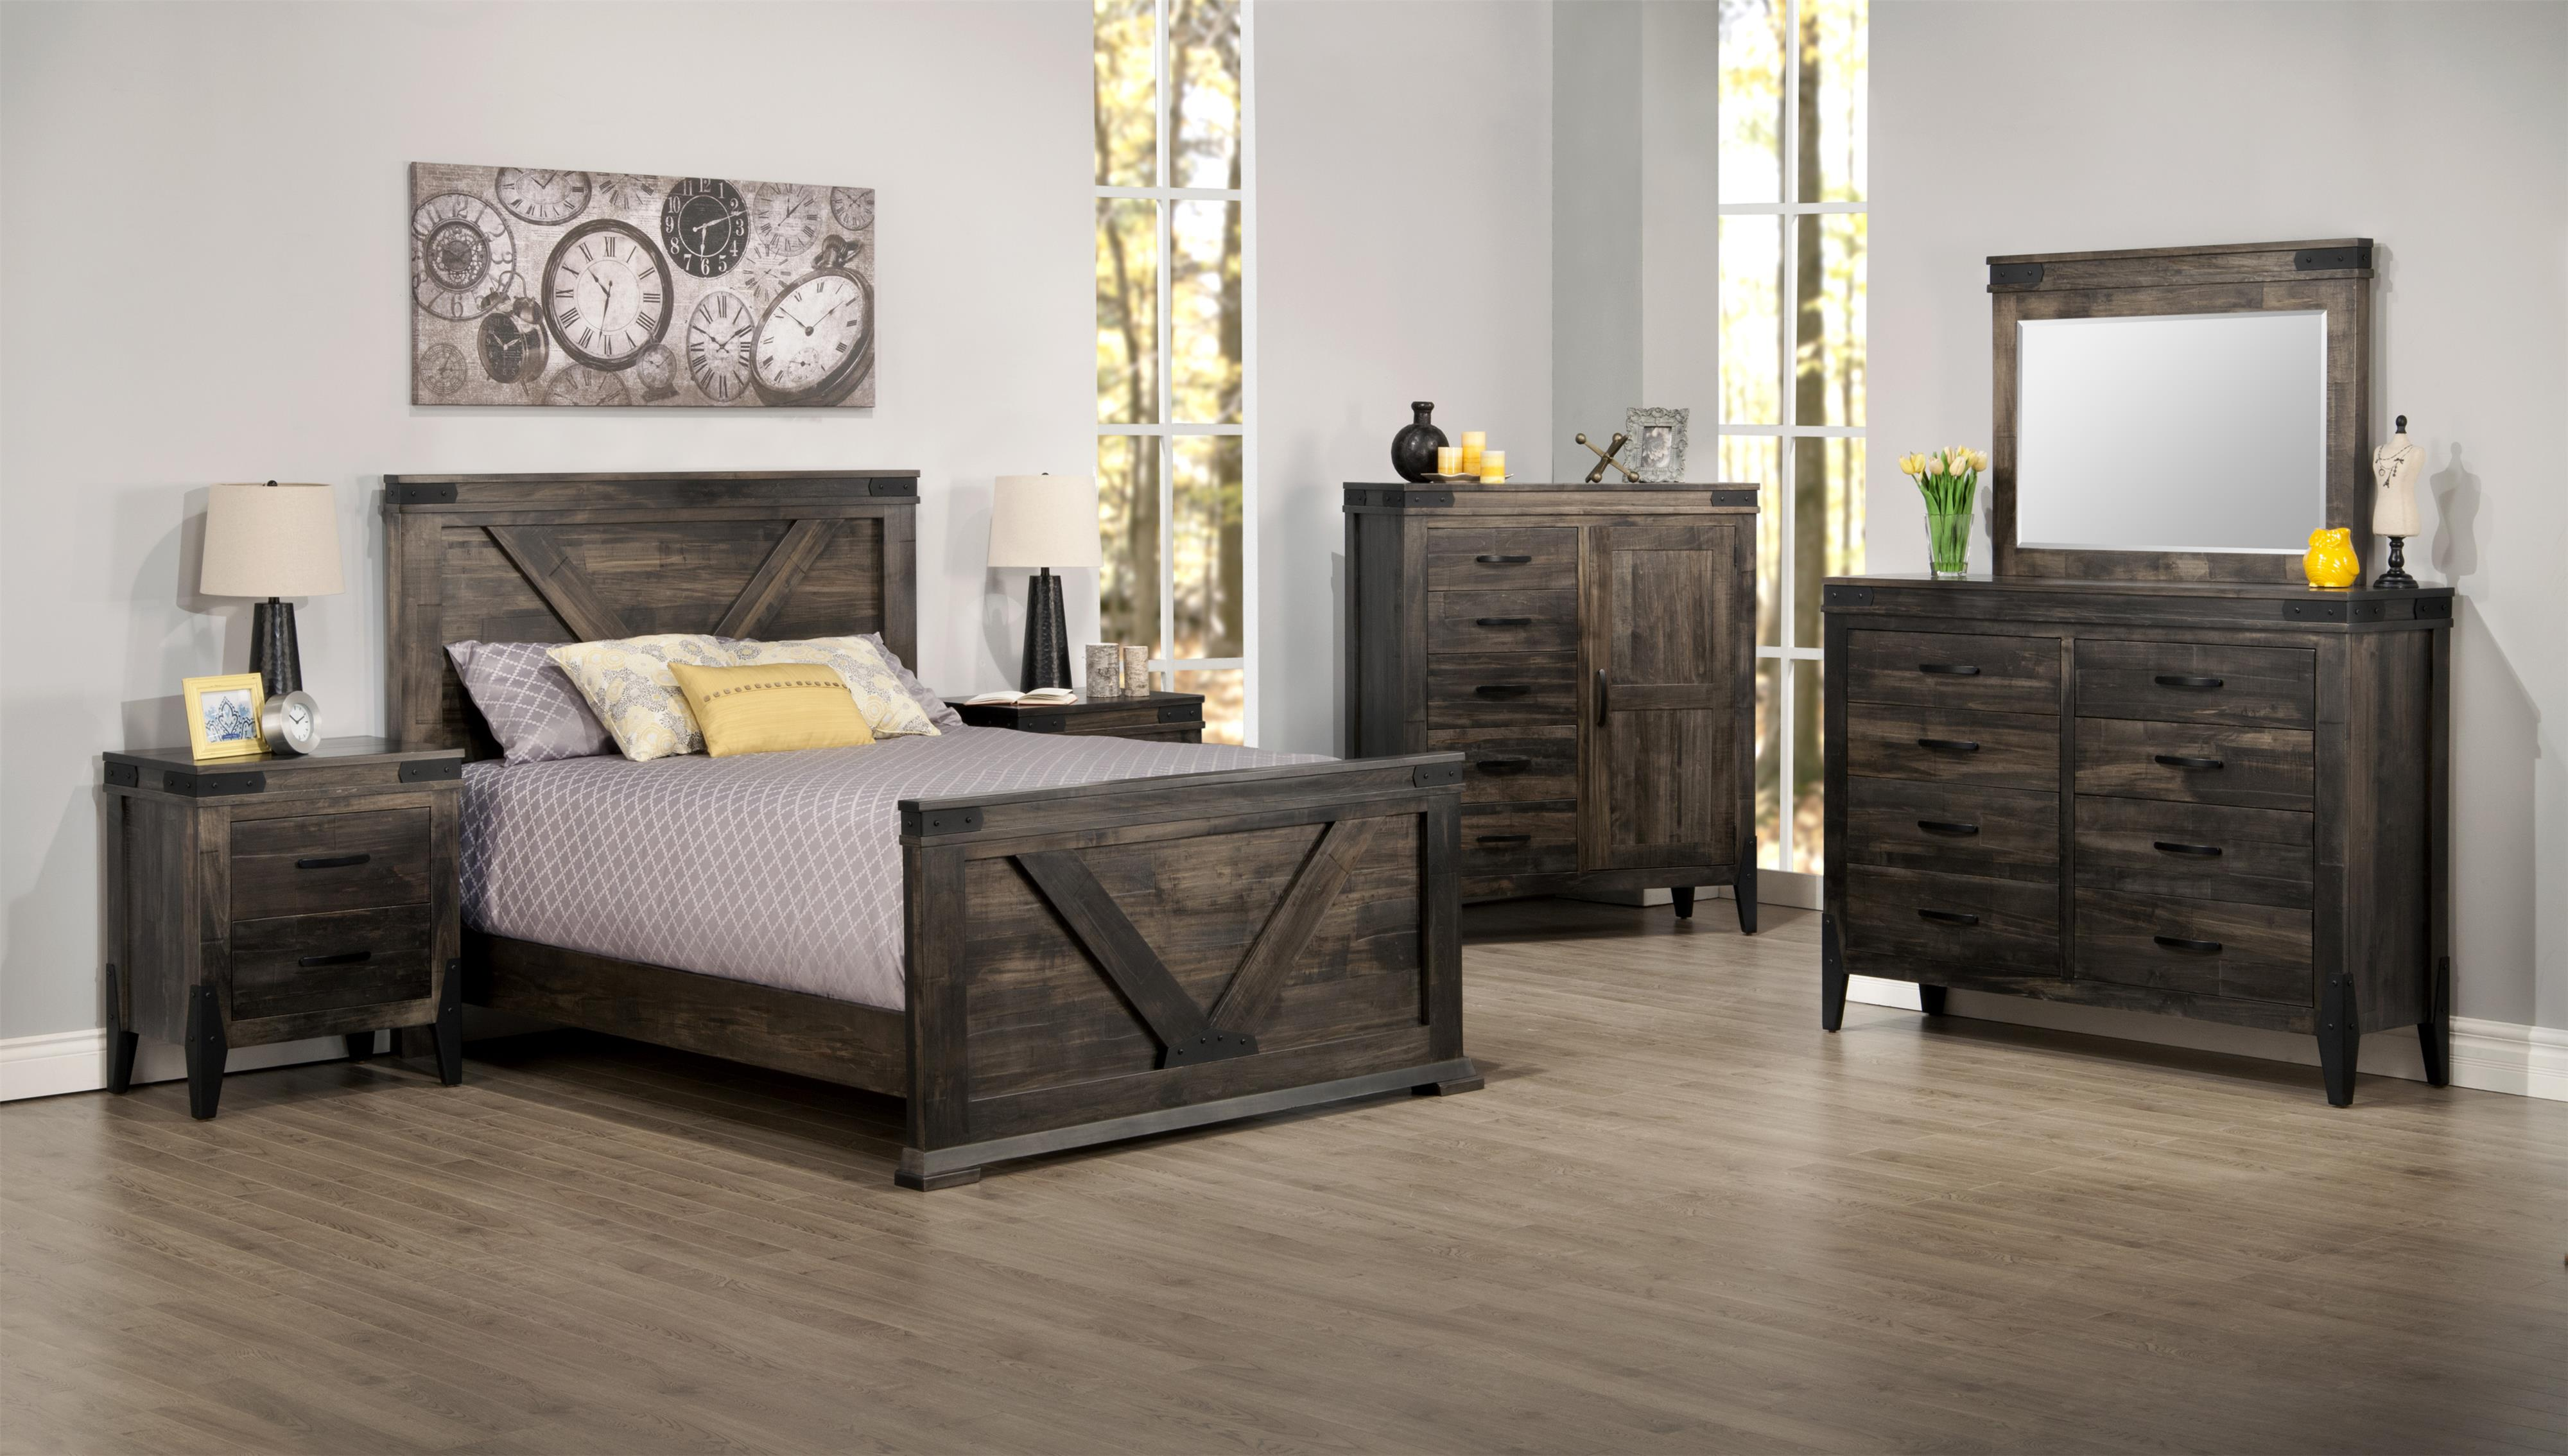 Chattanooga Queen Bedroom Group by Handstone at Jordan's Home Furnishings